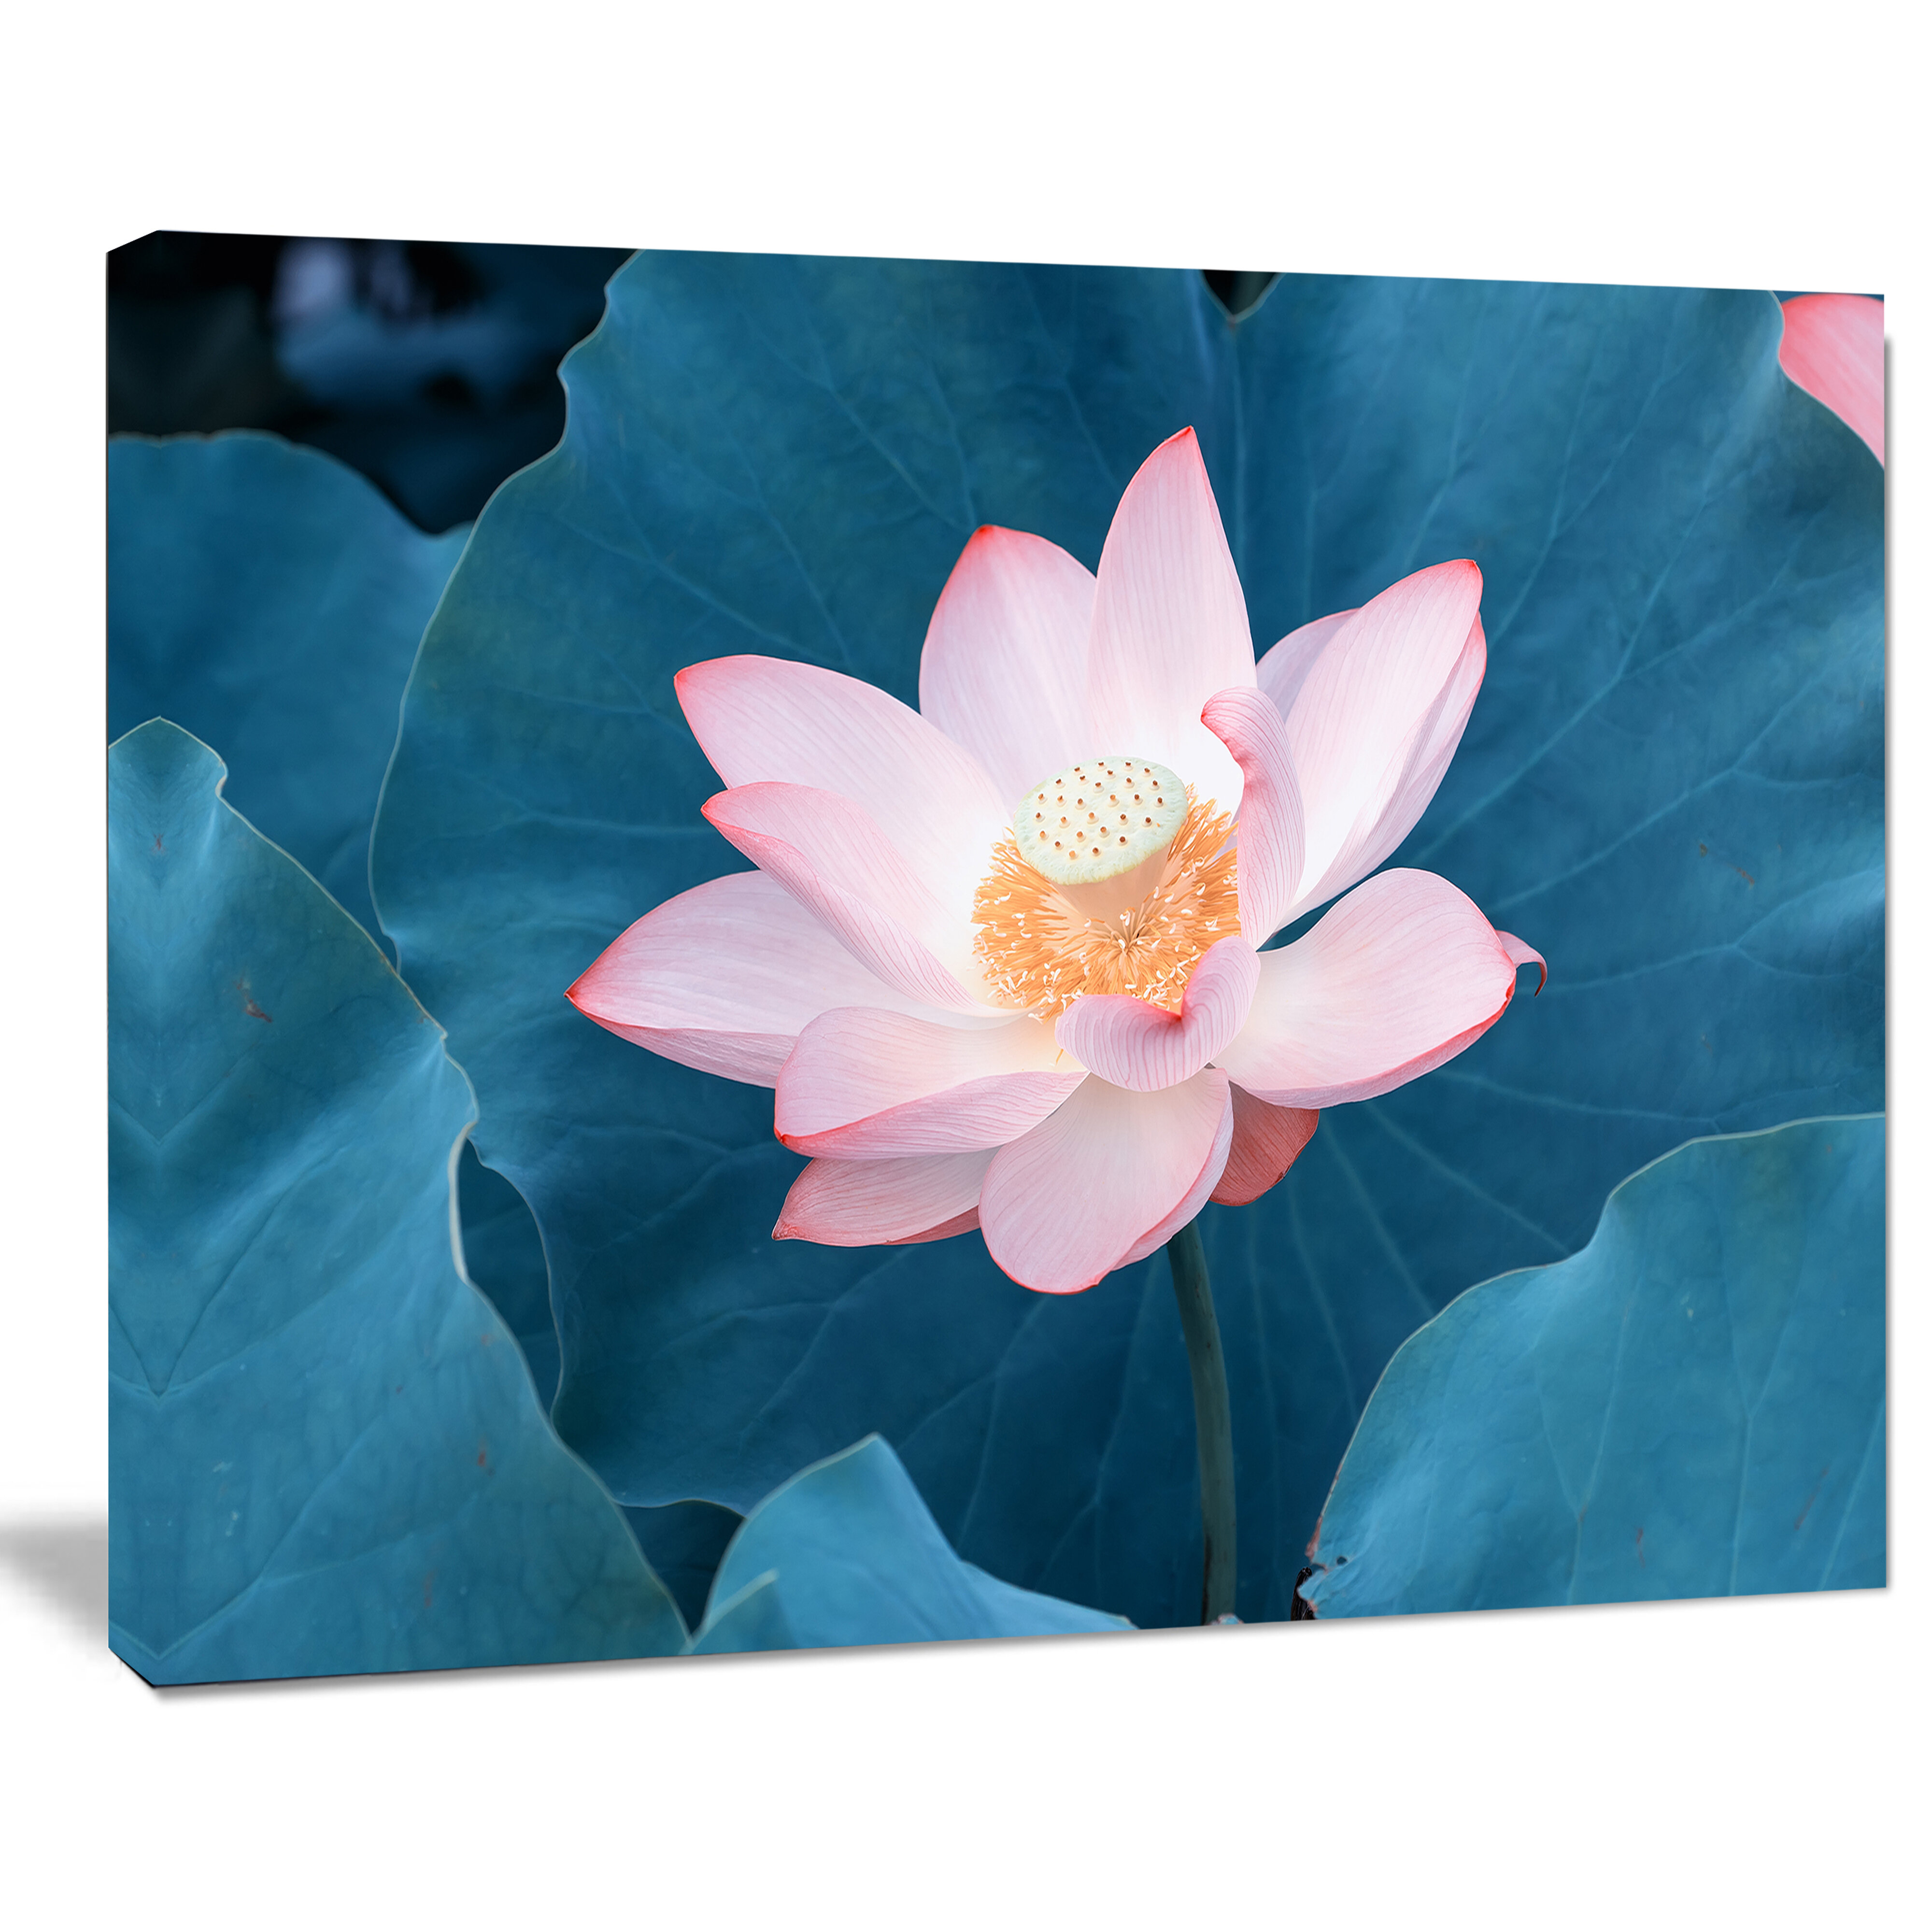 Designart Blooming Pink Lotus Flower Photographic Print On Wrapped